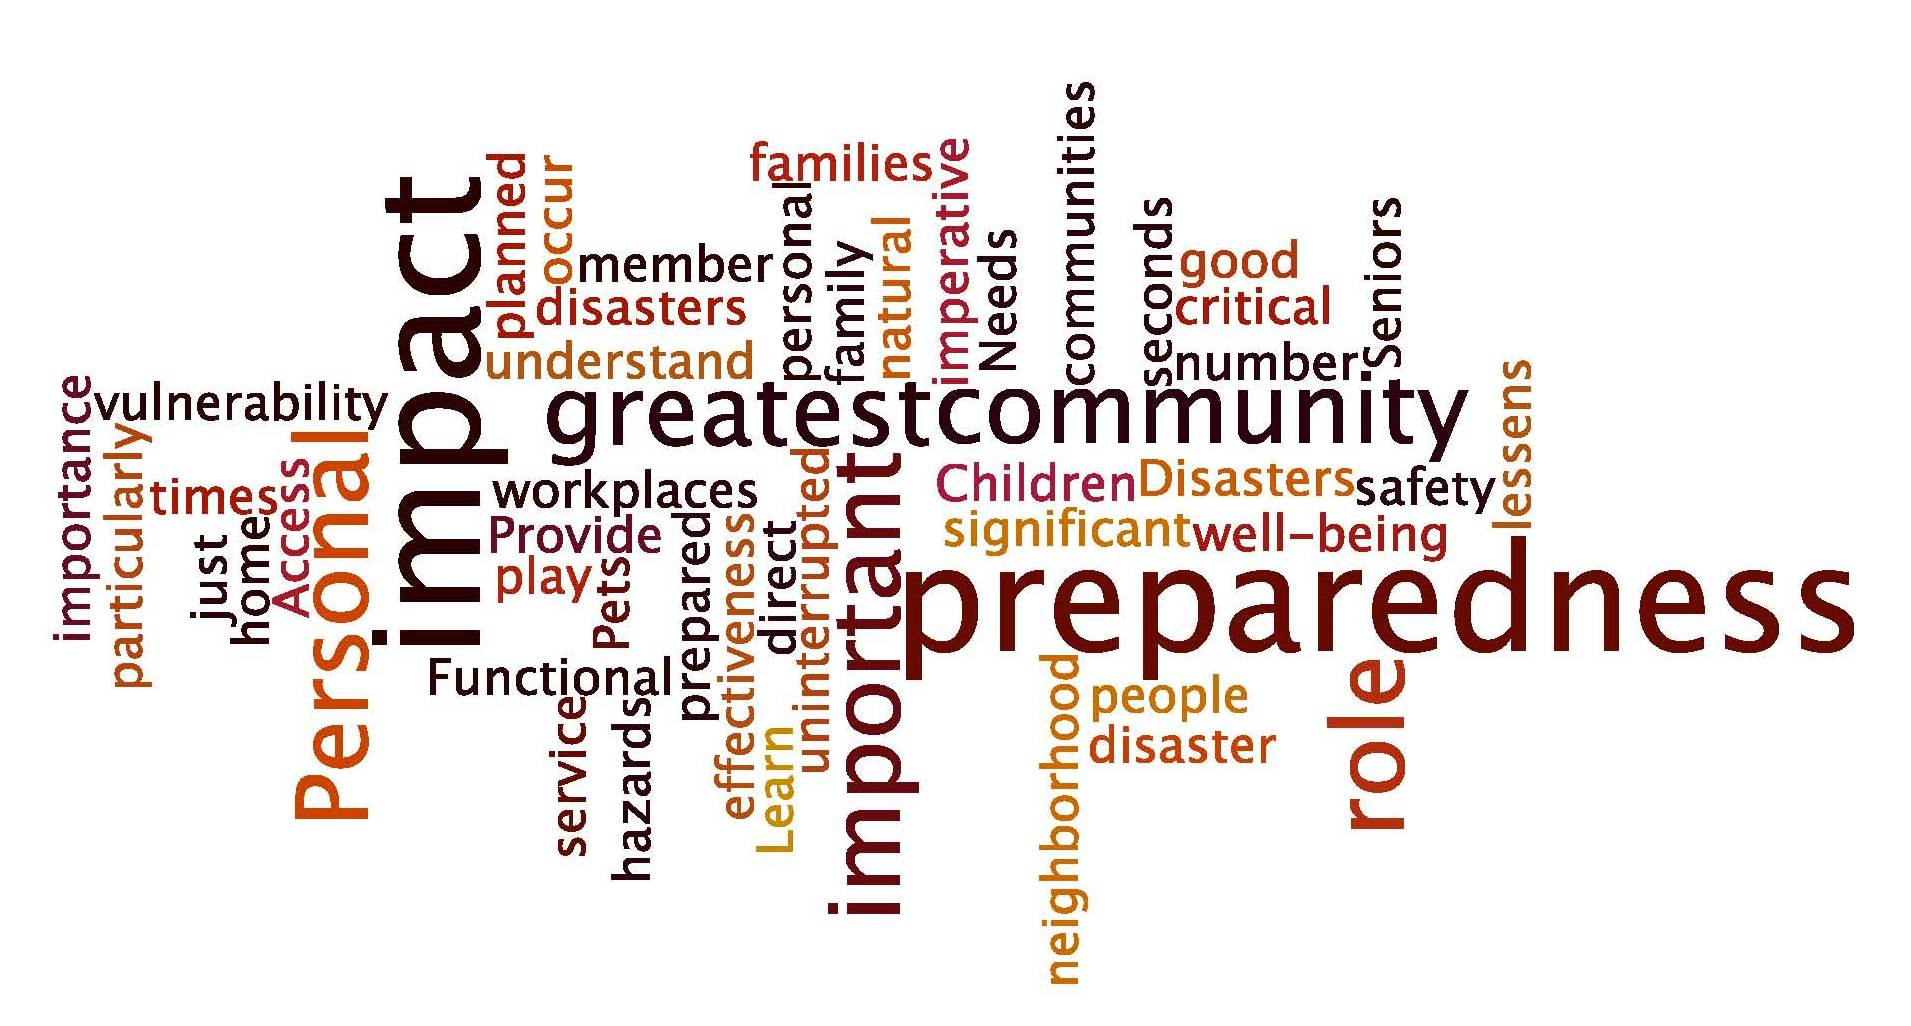 Safety Resources Word Collage